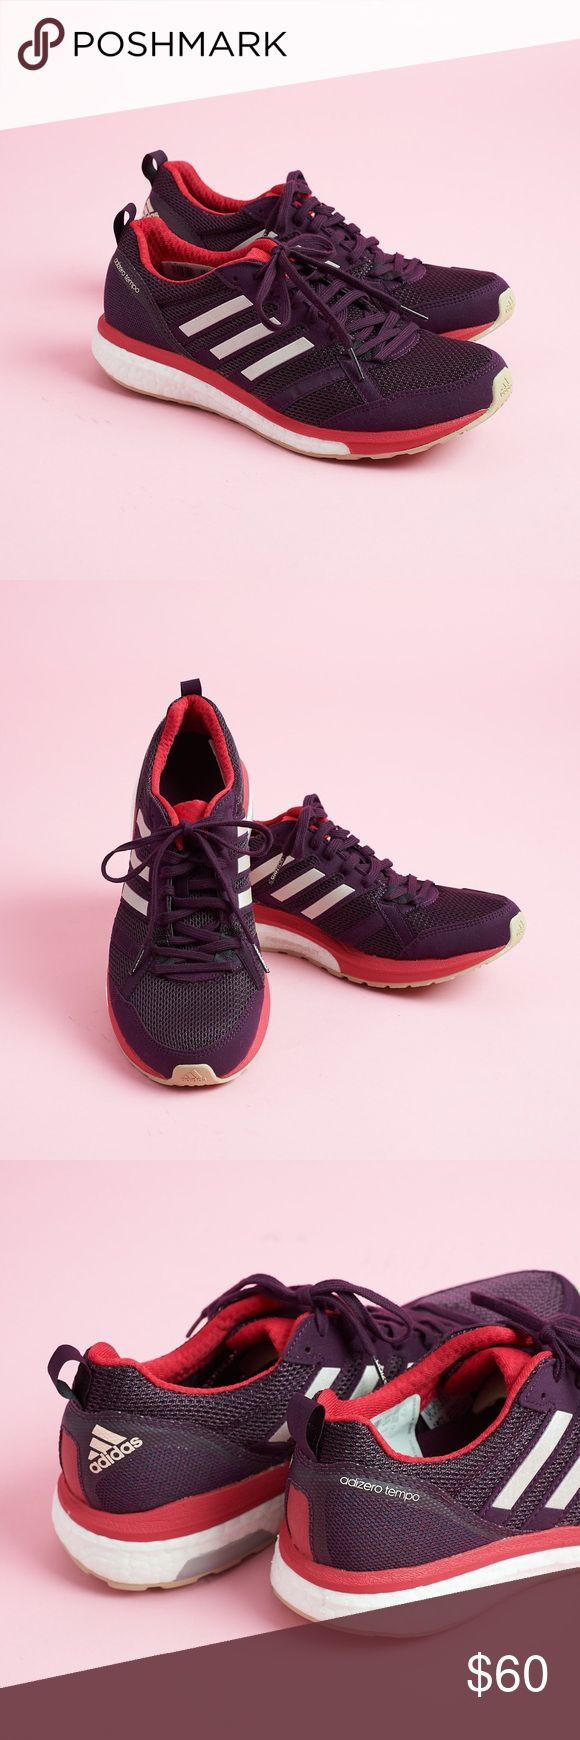 NEW Never worn Adidas Adizero Tempo 9 NWT Adidas Adizero Tempo 9 sneakers, never worn! Ultra boost style sole with continental rubber bottom. adidas Shoes Athletic Shoes